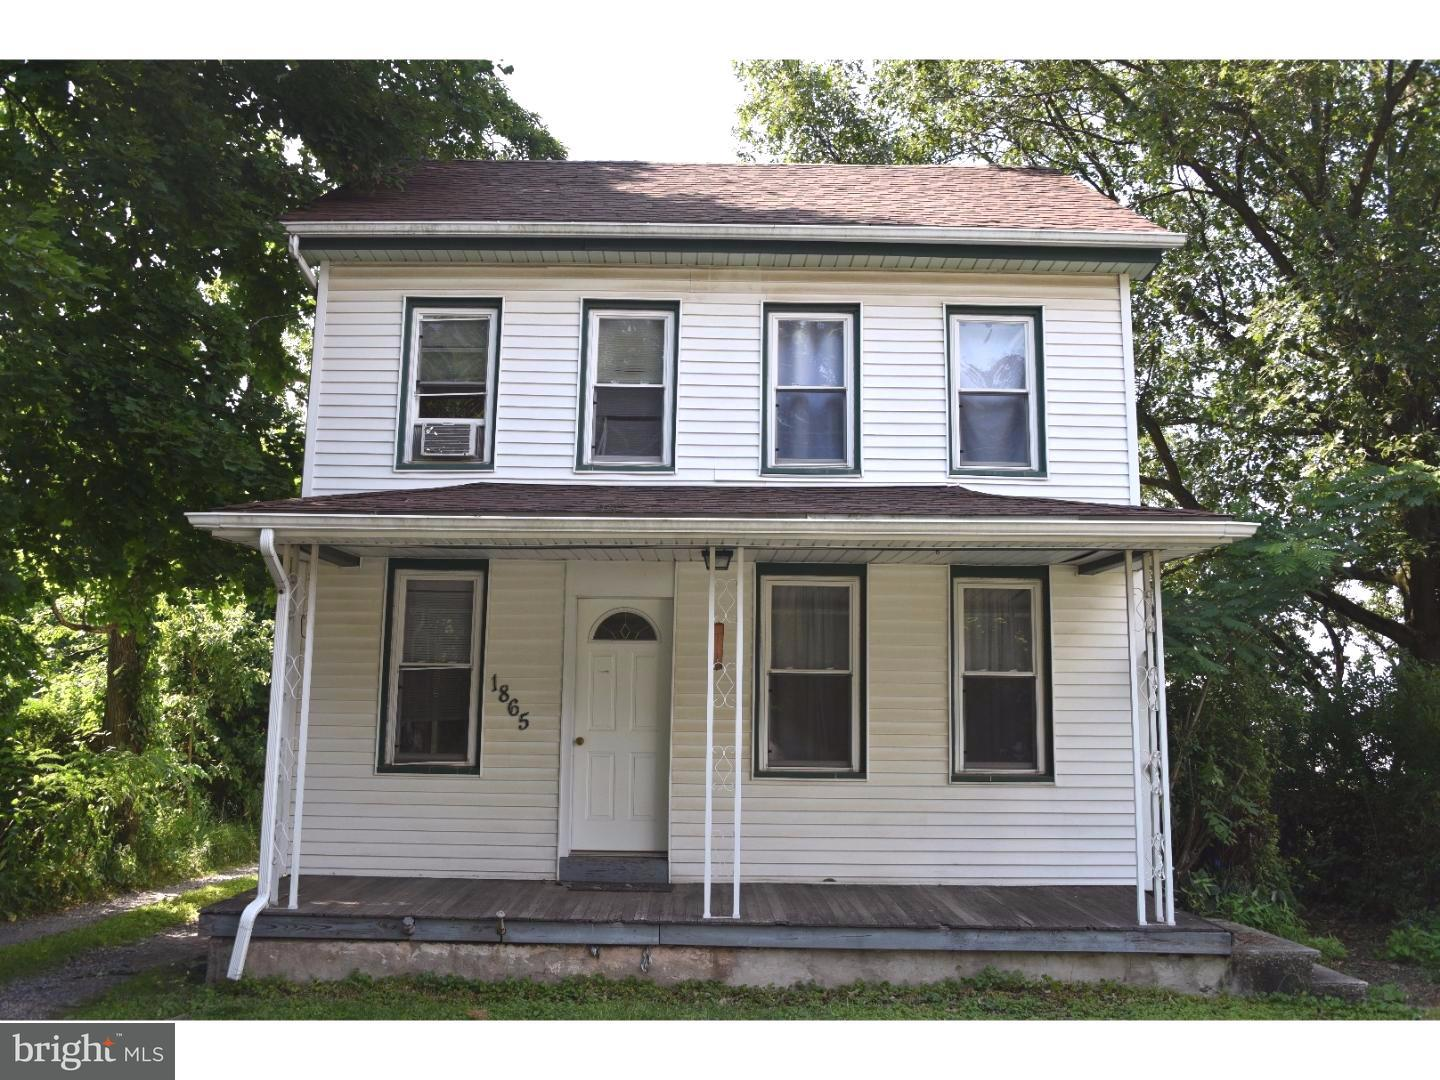 1865 OLD LANCASTER PIKE, READING - Listed at $135,000, READING